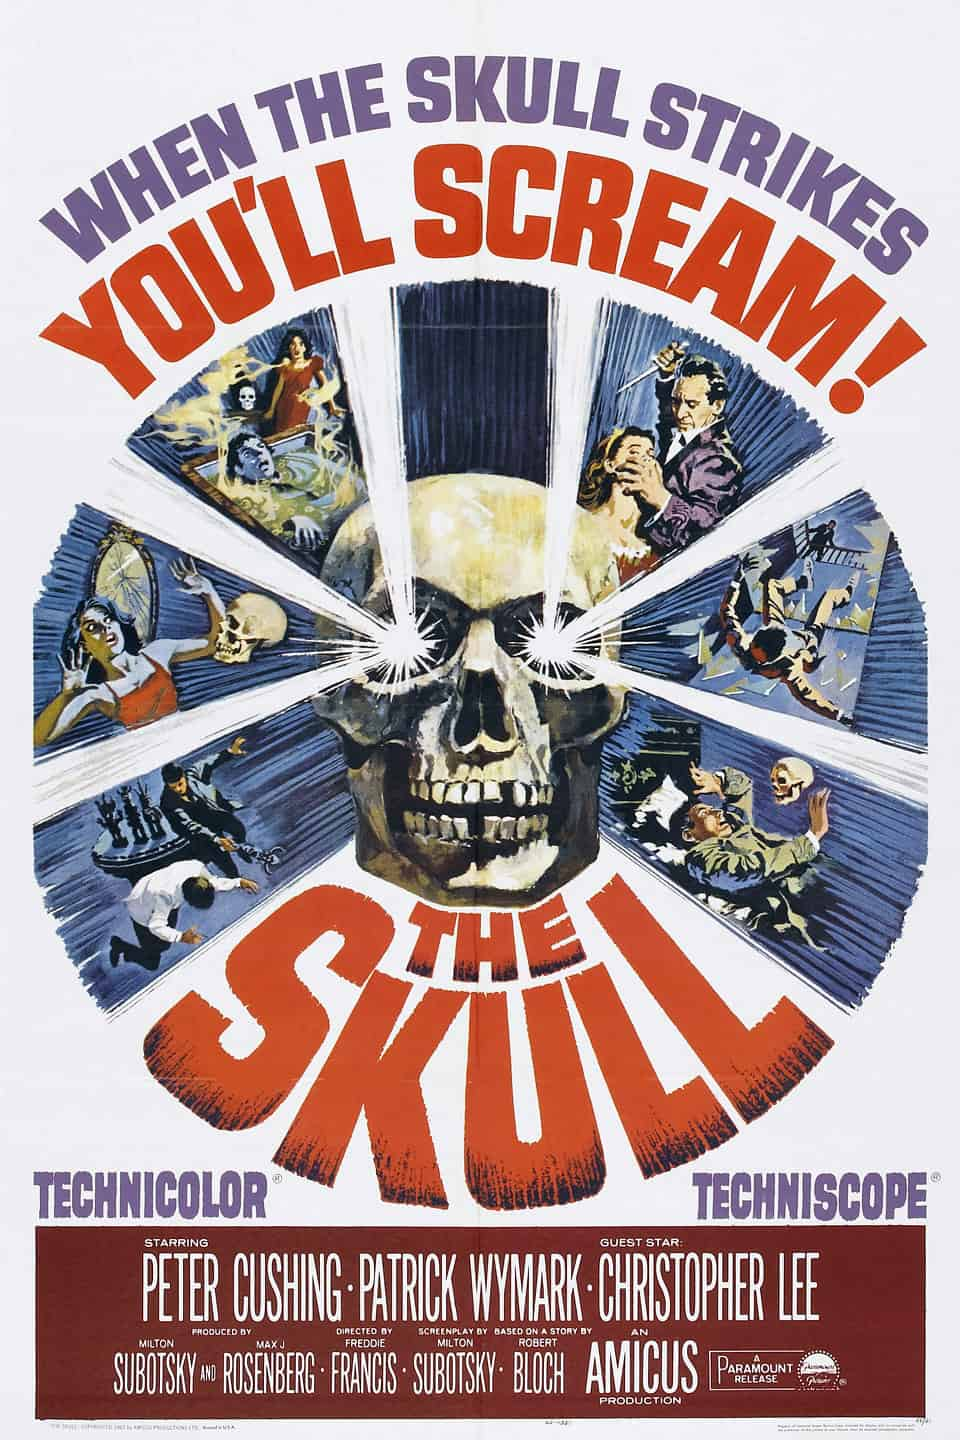 Movie Posters We Love: The Skull (1965)